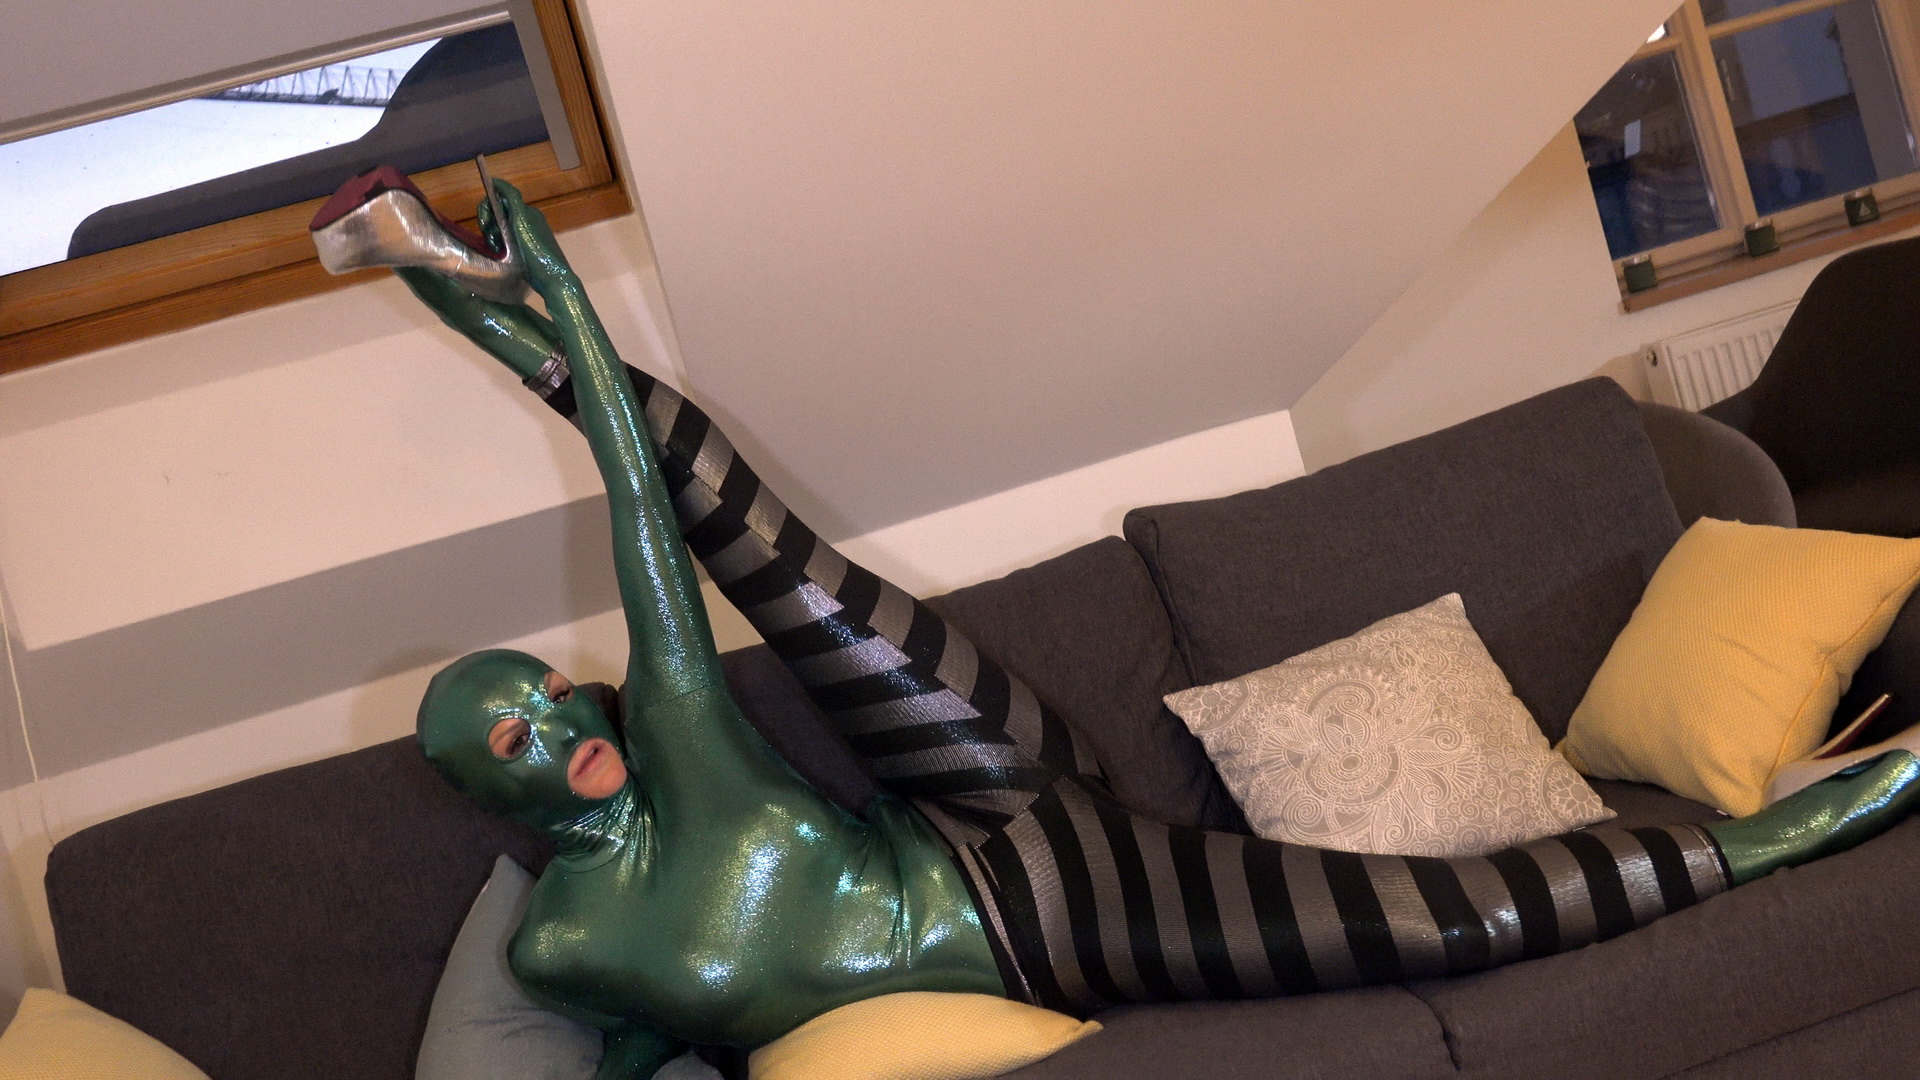 Flexi zentaidoll undressing